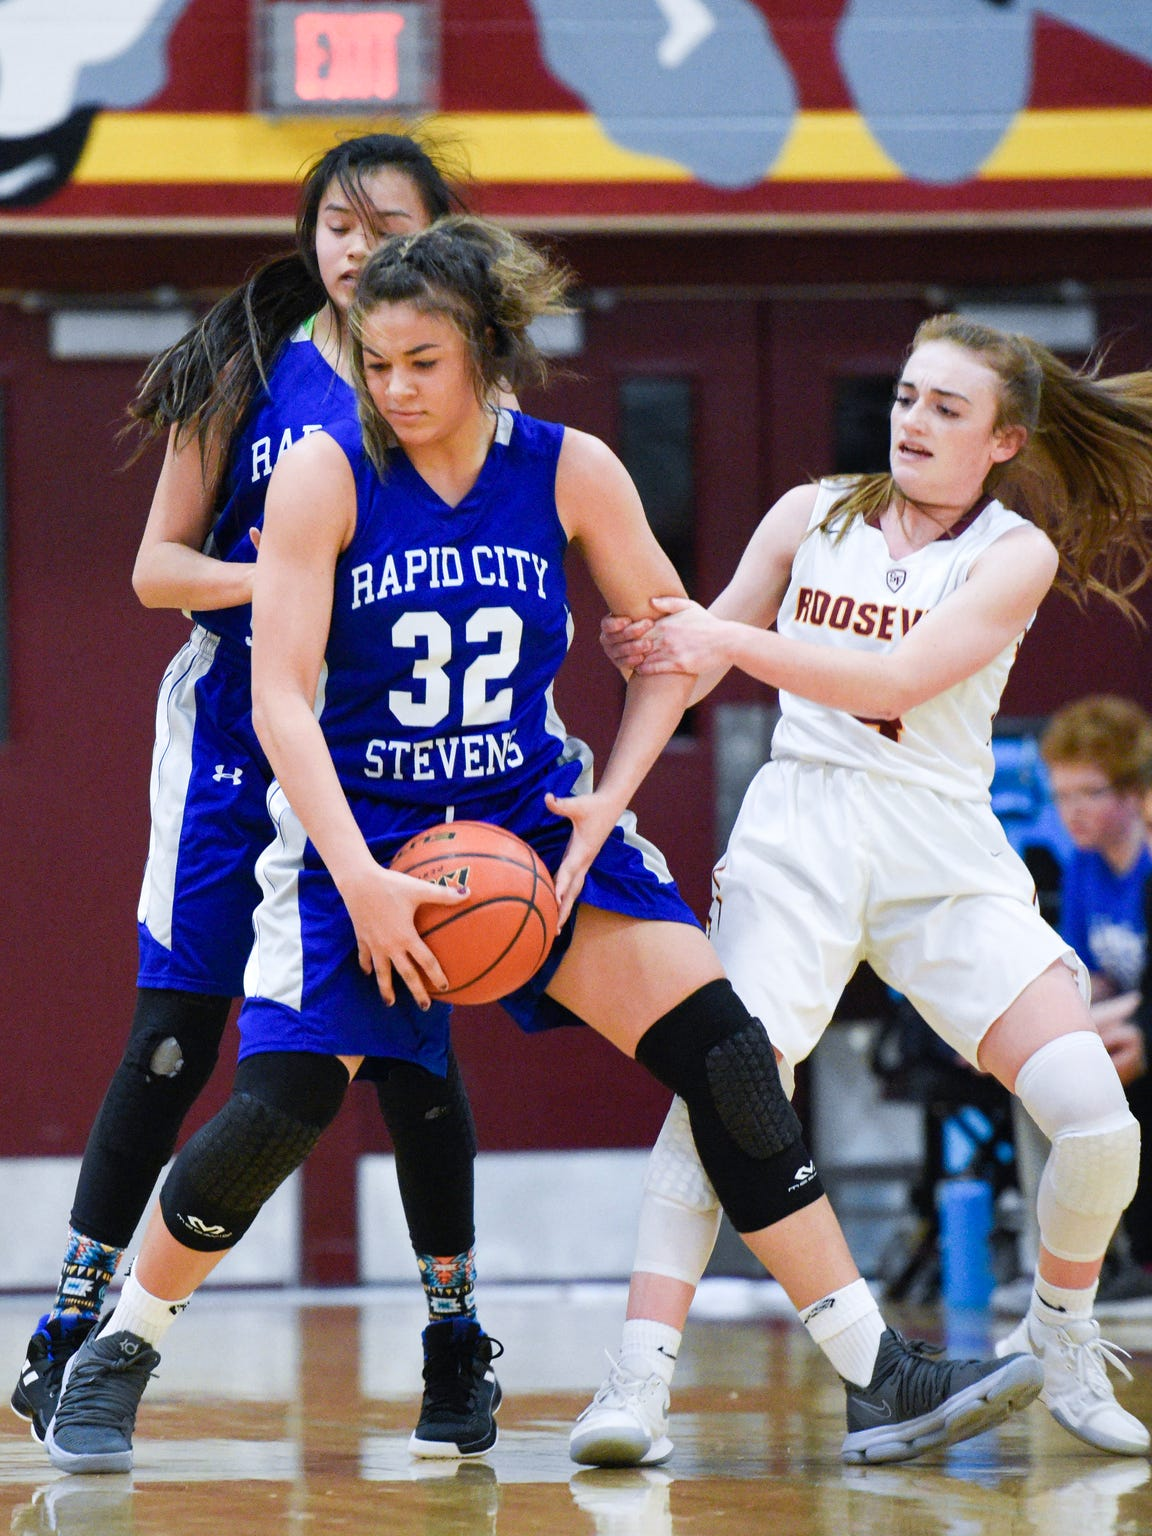 Rapid City Central guard Kyah Watson (32) gets fouled by Roosevelt's Hattie Giblin (4) at Roosevelt High School on Friday, Jan. 19, 2018. Rapid City Stevens beat Roosevelt 45-30.